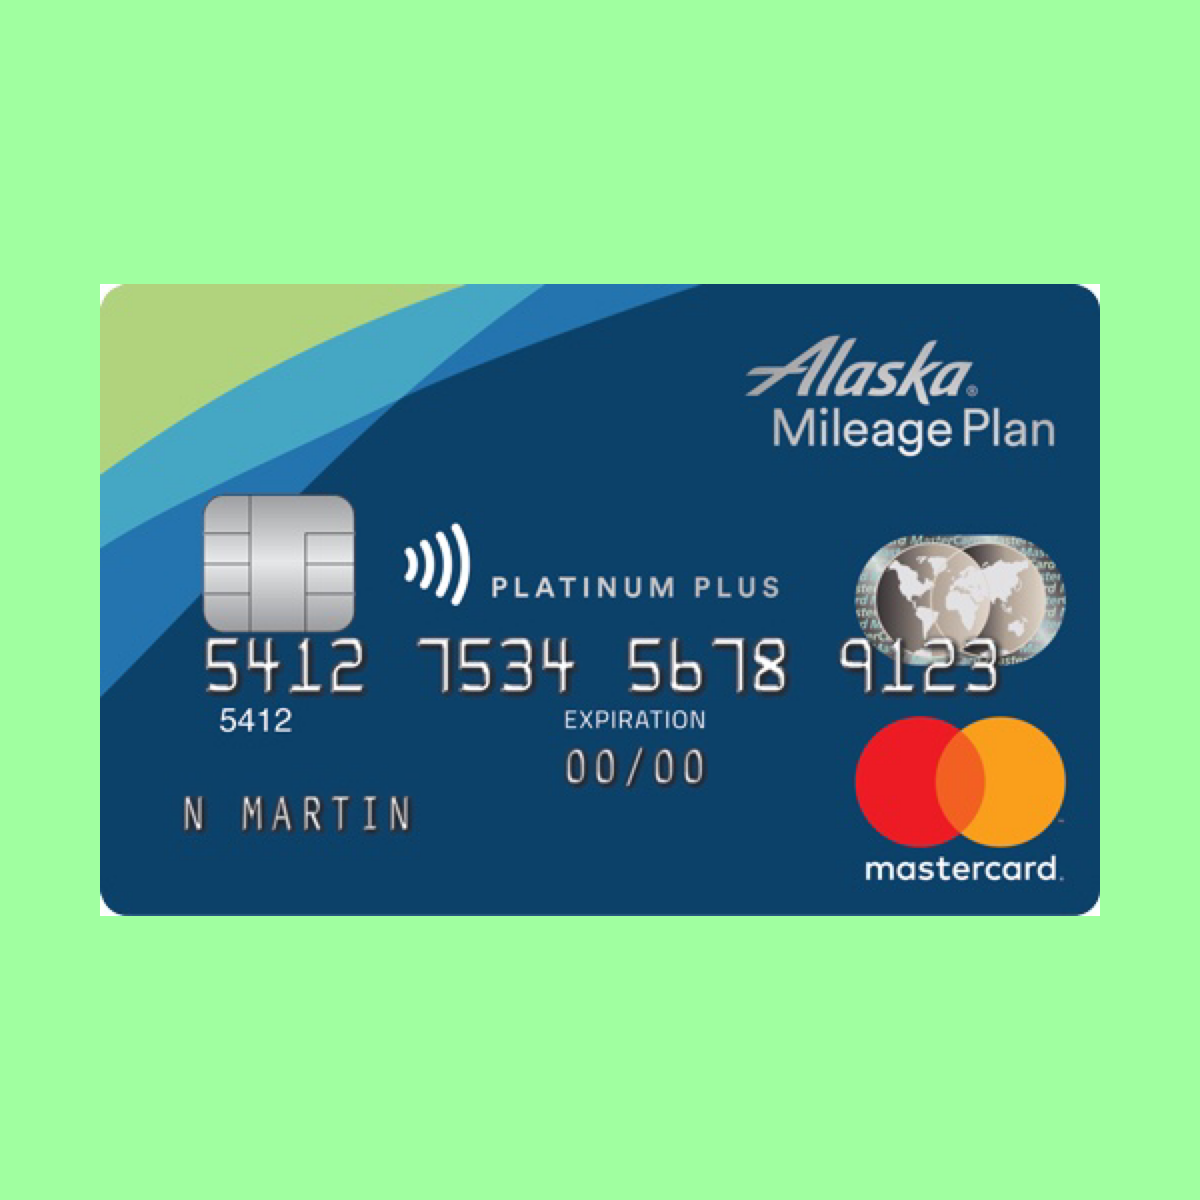 Alaska Airlines Mastercard The Point Calculator in 2020